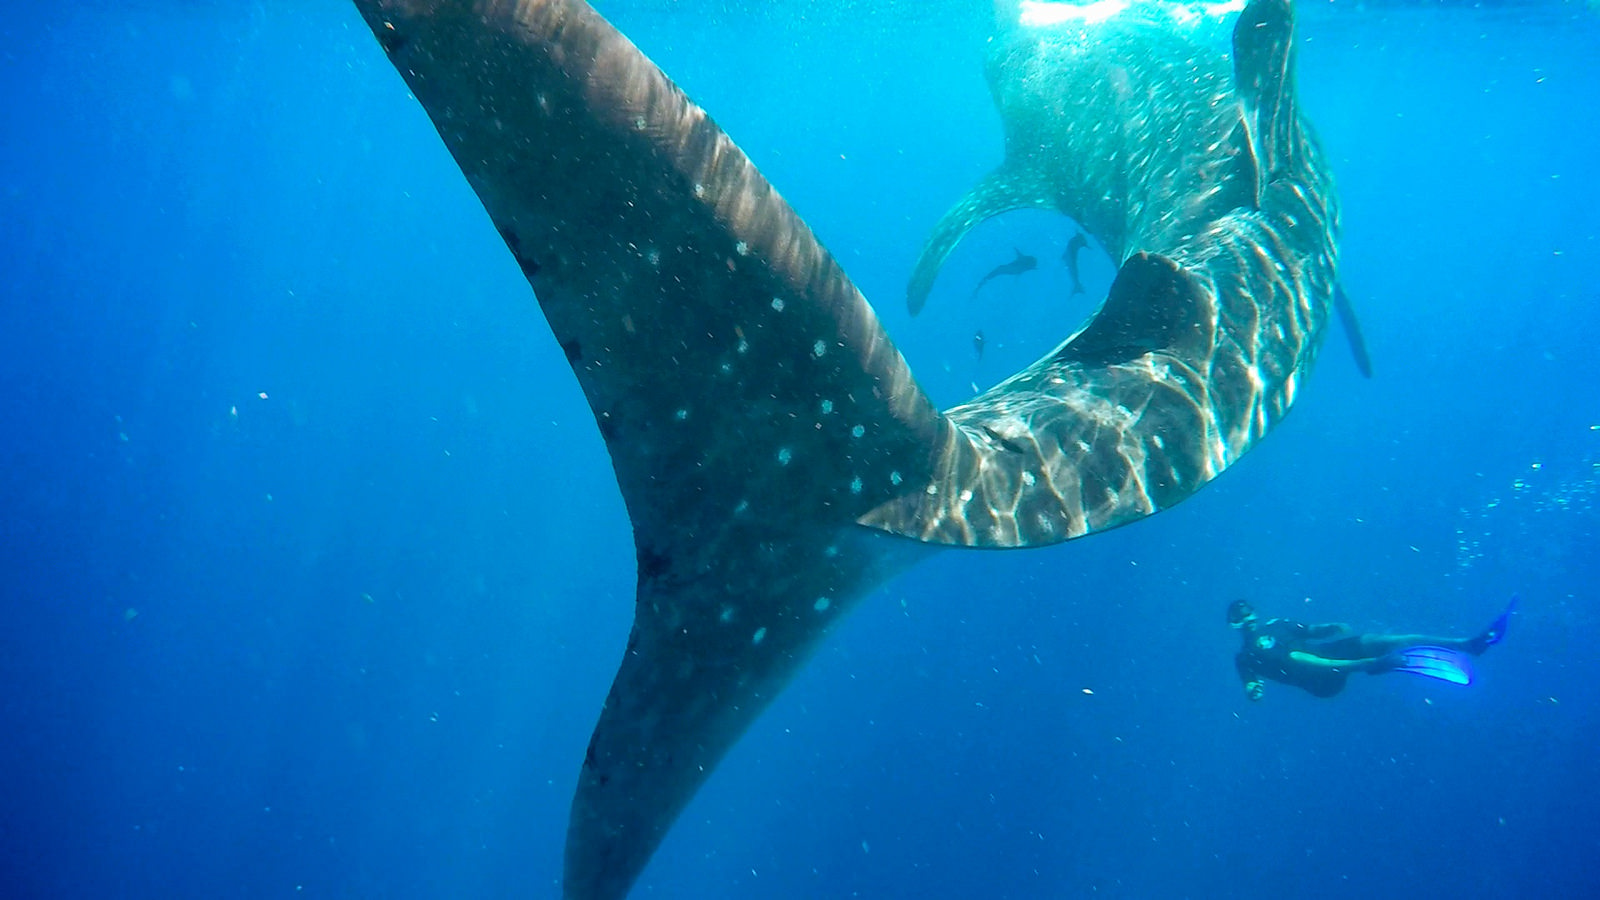 Diver swimming with whale shark